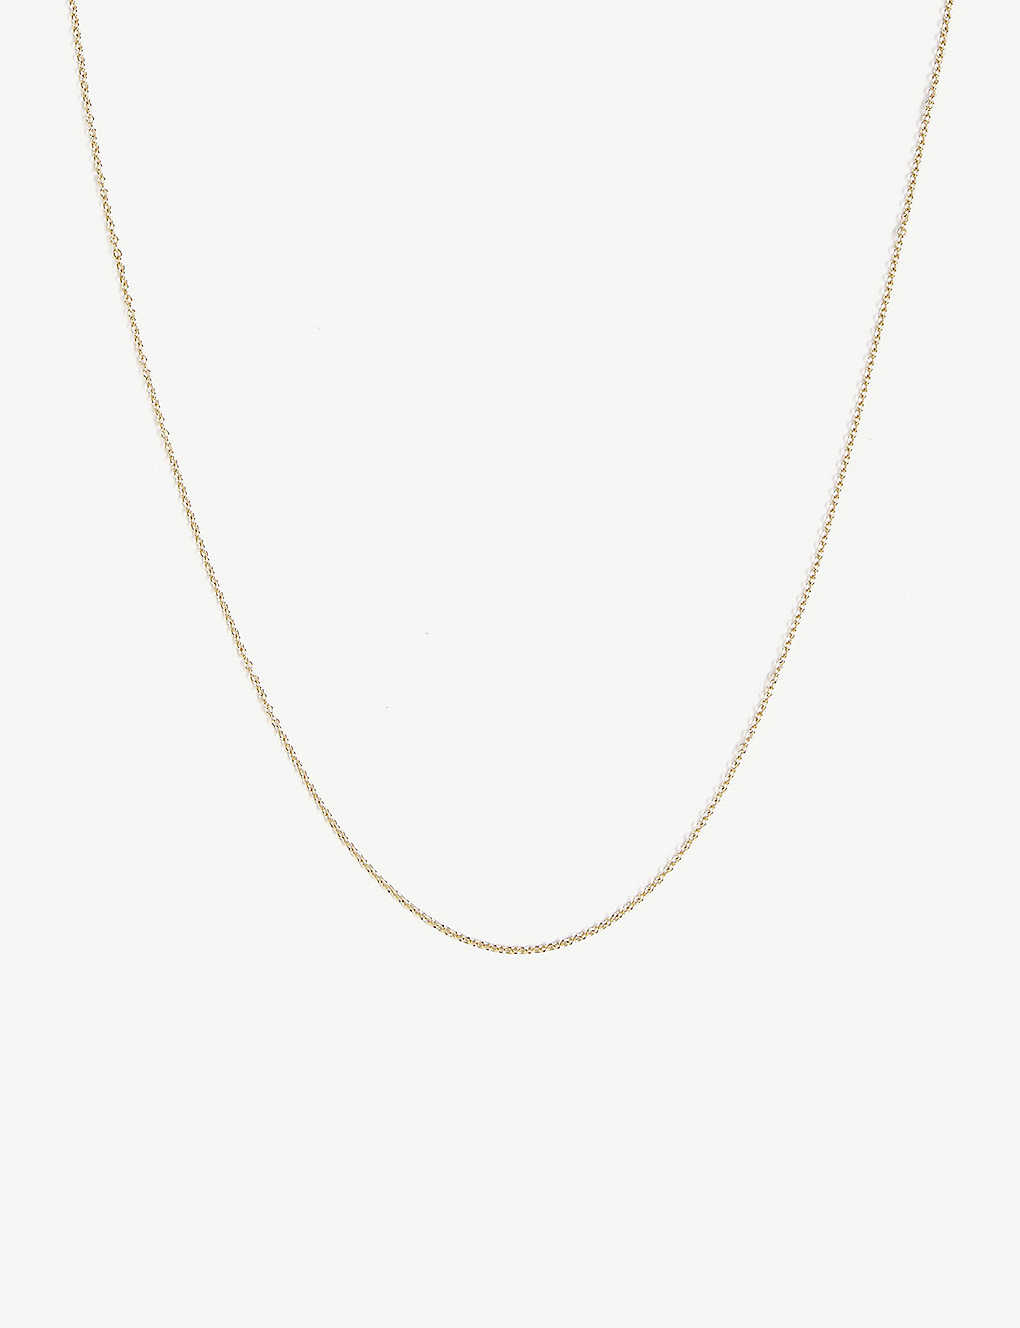 OTIUMBERG: 9ct gold cable chain necklace